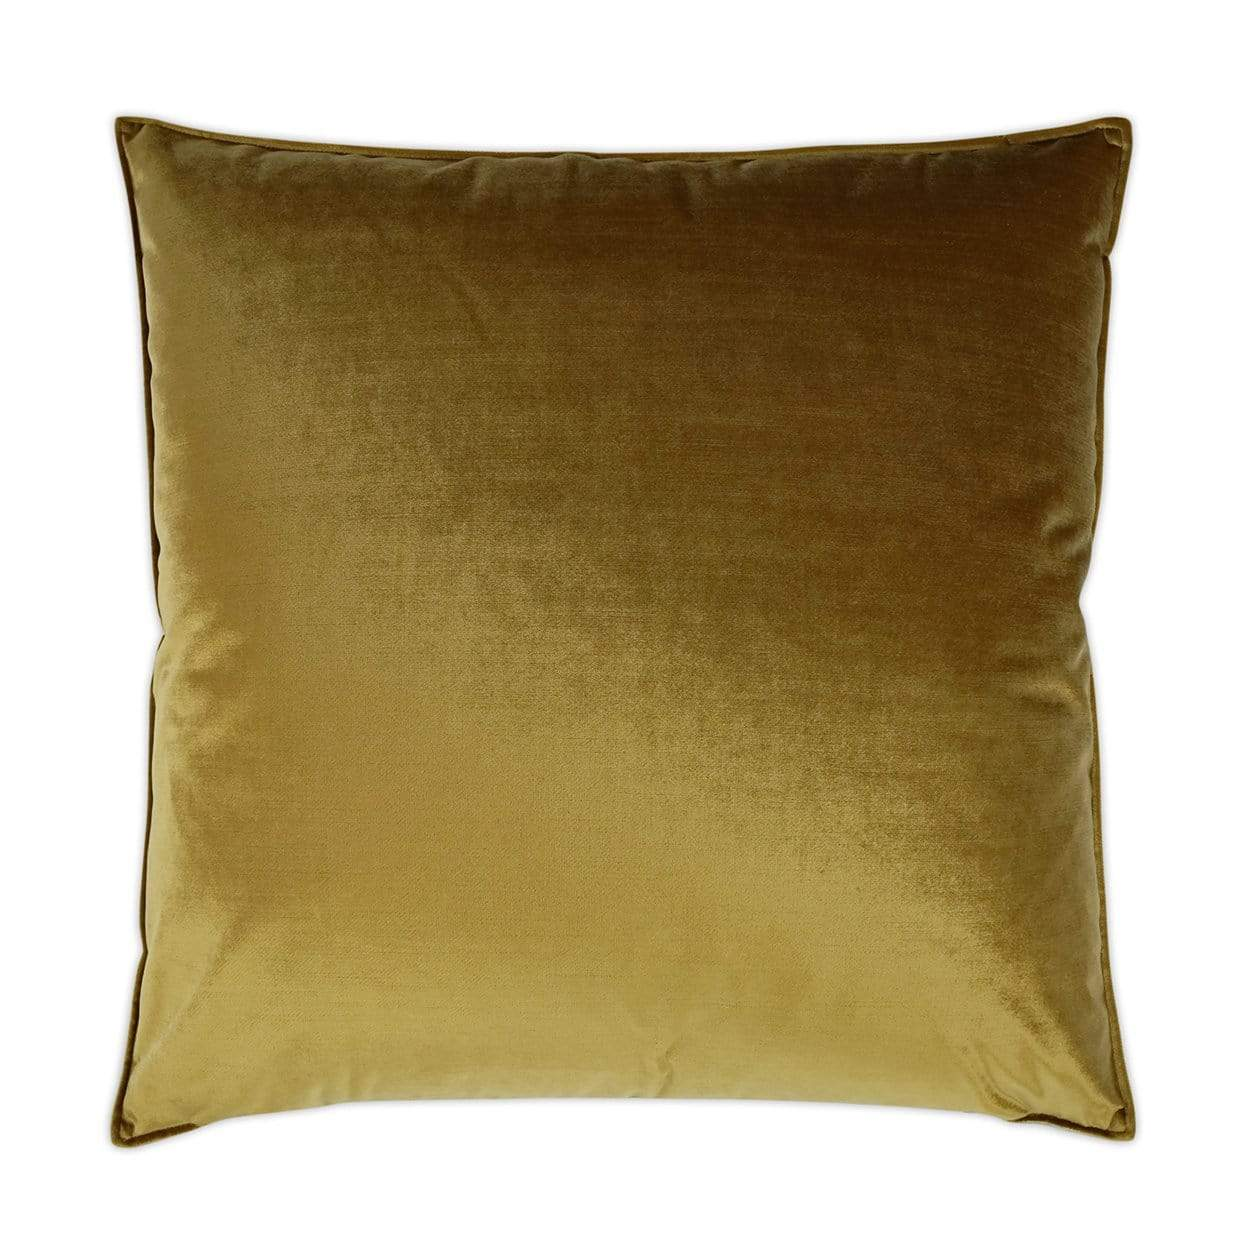 D.V. Kap D.V. Kap Iridescence Pillow - Available in 8 Colors Baltic 3383-B